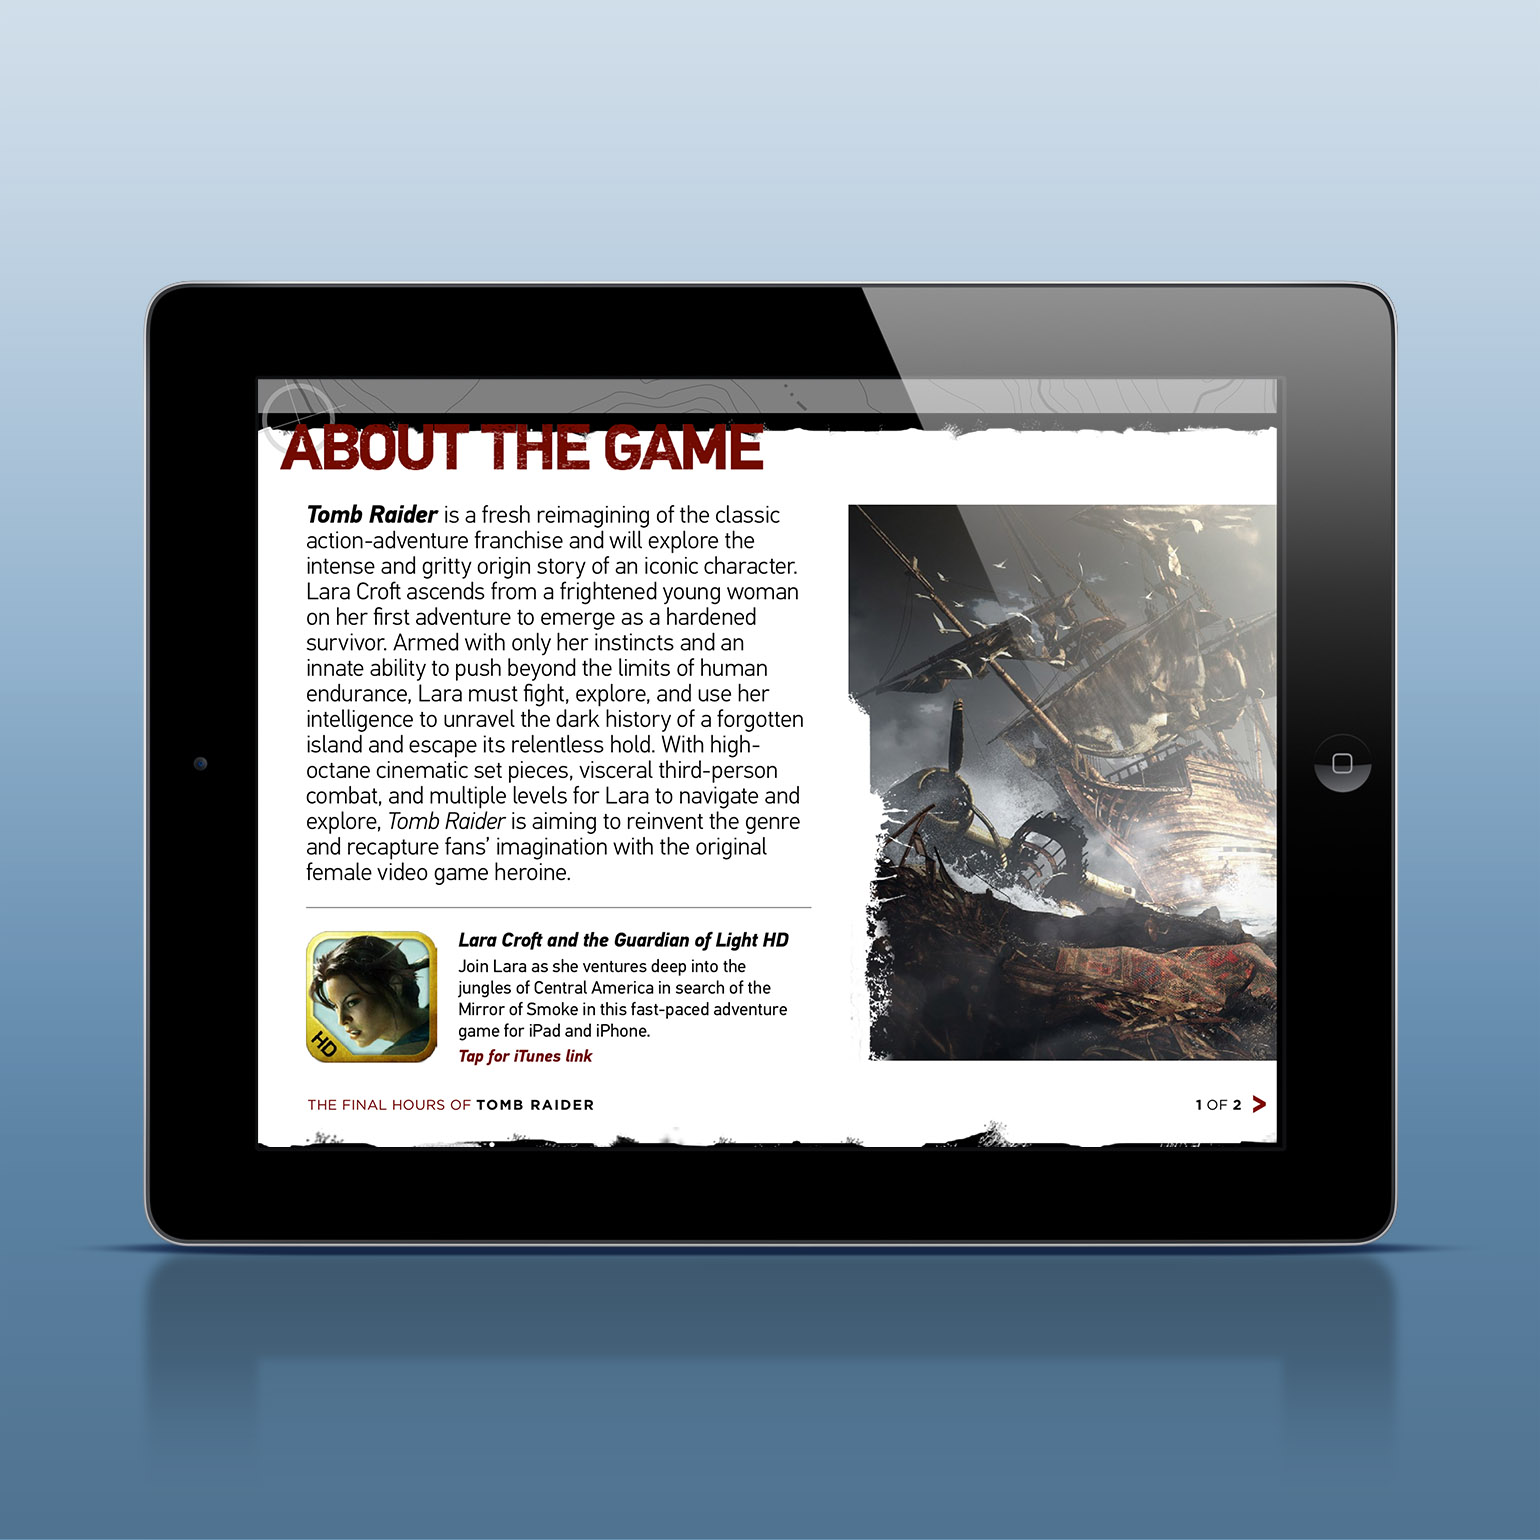 iPad_TR_aboutthegame1.jpg